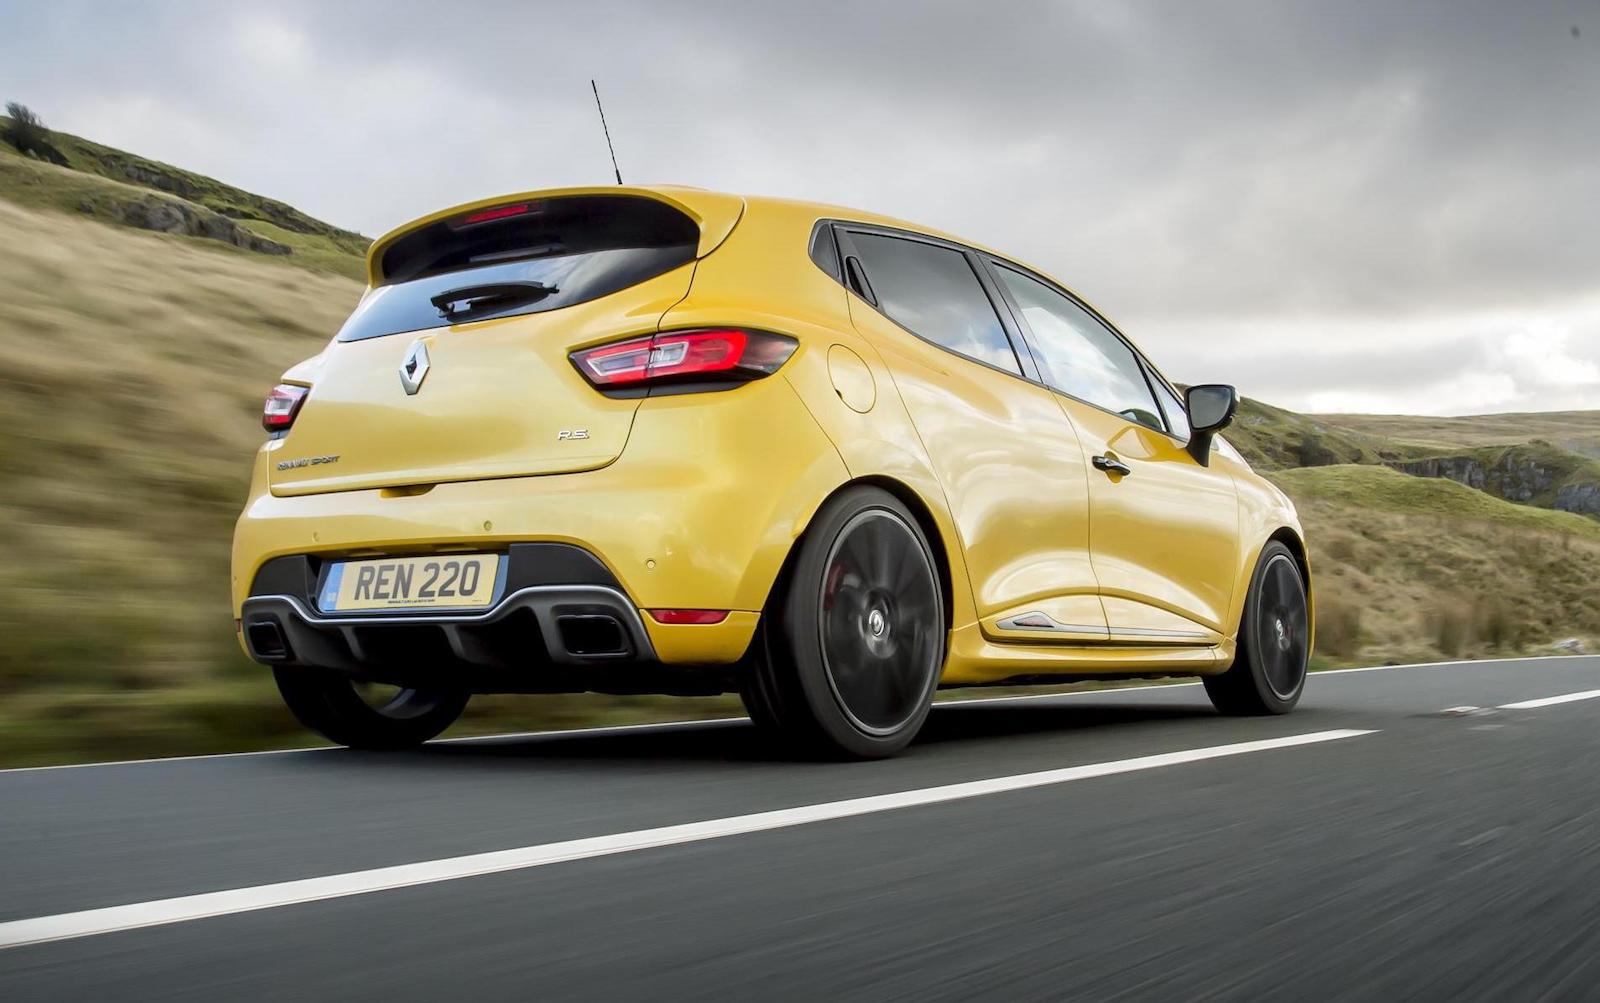 2018 renault clio r s trophy now on sale in australia performancedrive. Black Bedroom Furniture Sets. Home Design Ideas